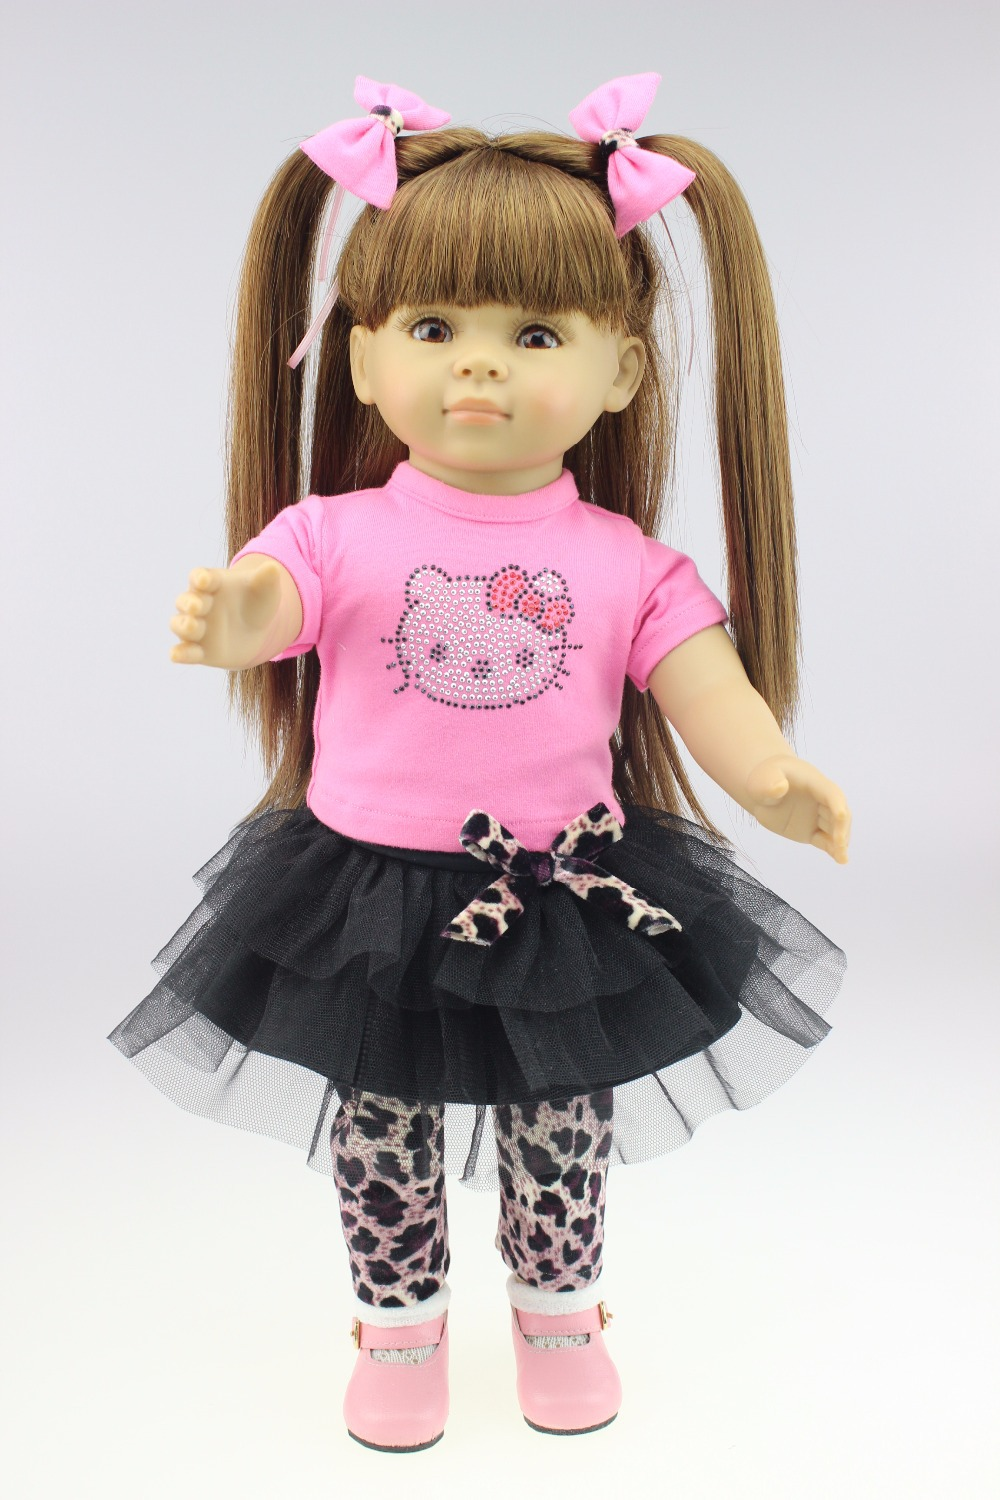 New Wholesale American Girl Style Baby Doll Journey Girl Dollie Me Fashion Reborn Doll Toys For